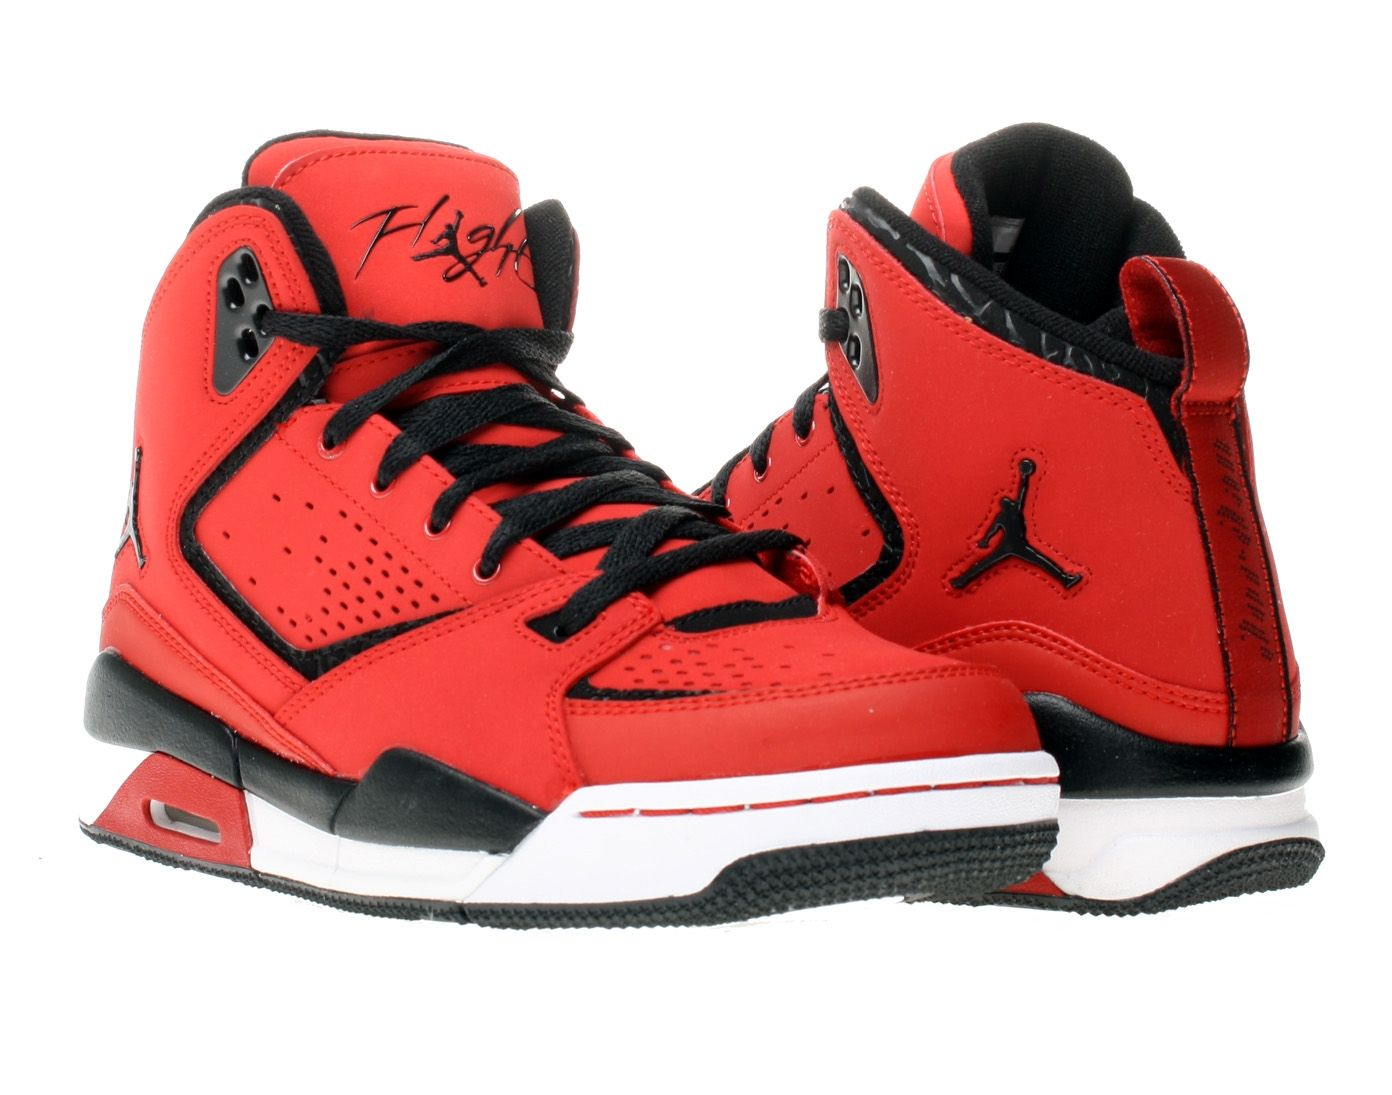 jordan shoes | Nike Air Jordan SC-2 (GS) Boys Basketball Shoes [